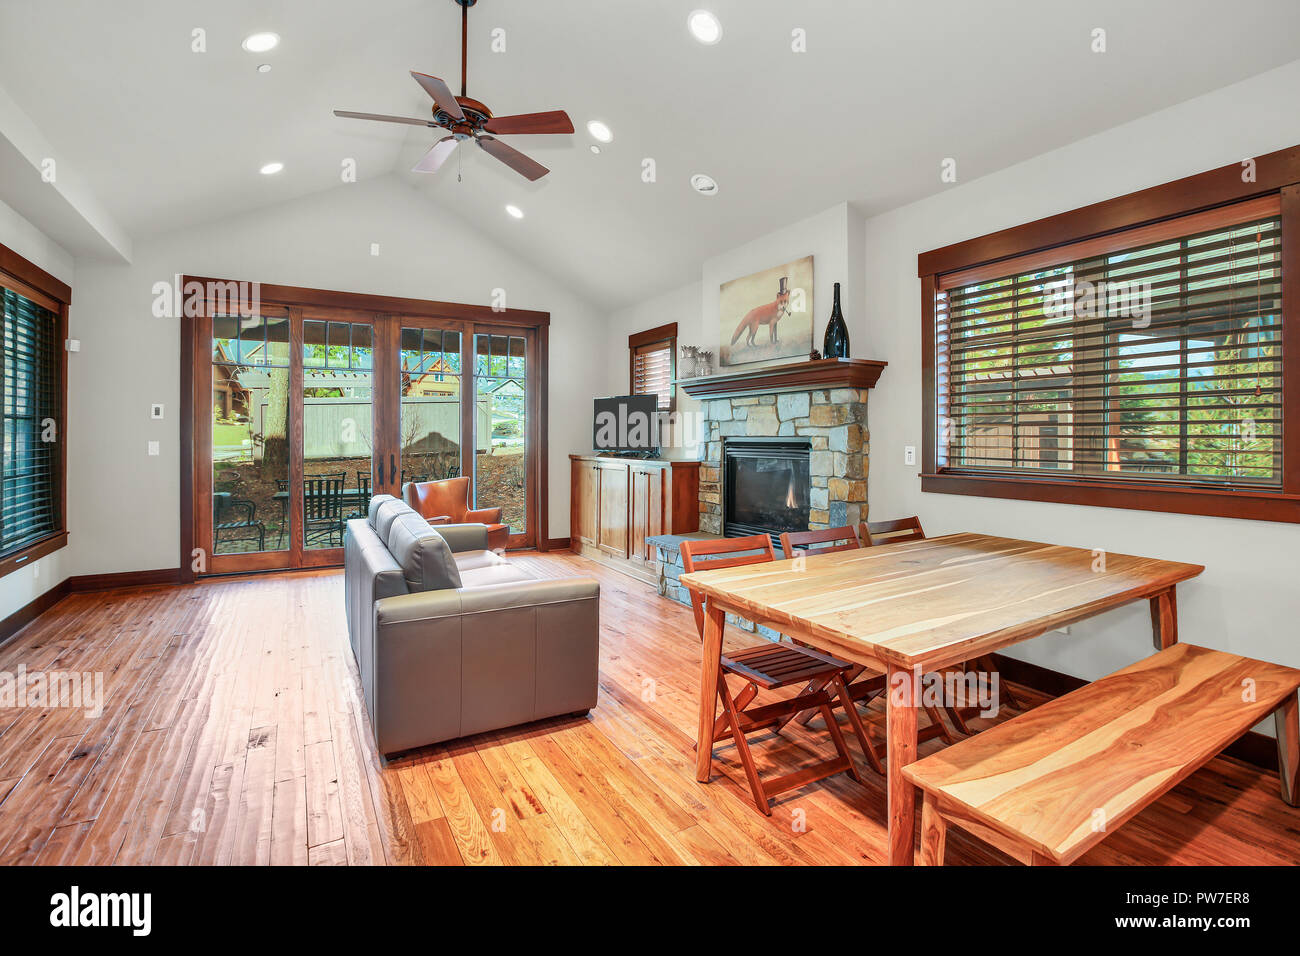 Open Floor Plan Design Of A Living Room And Dining With Vaulted Ceiling Wood Flooring Northwest USA